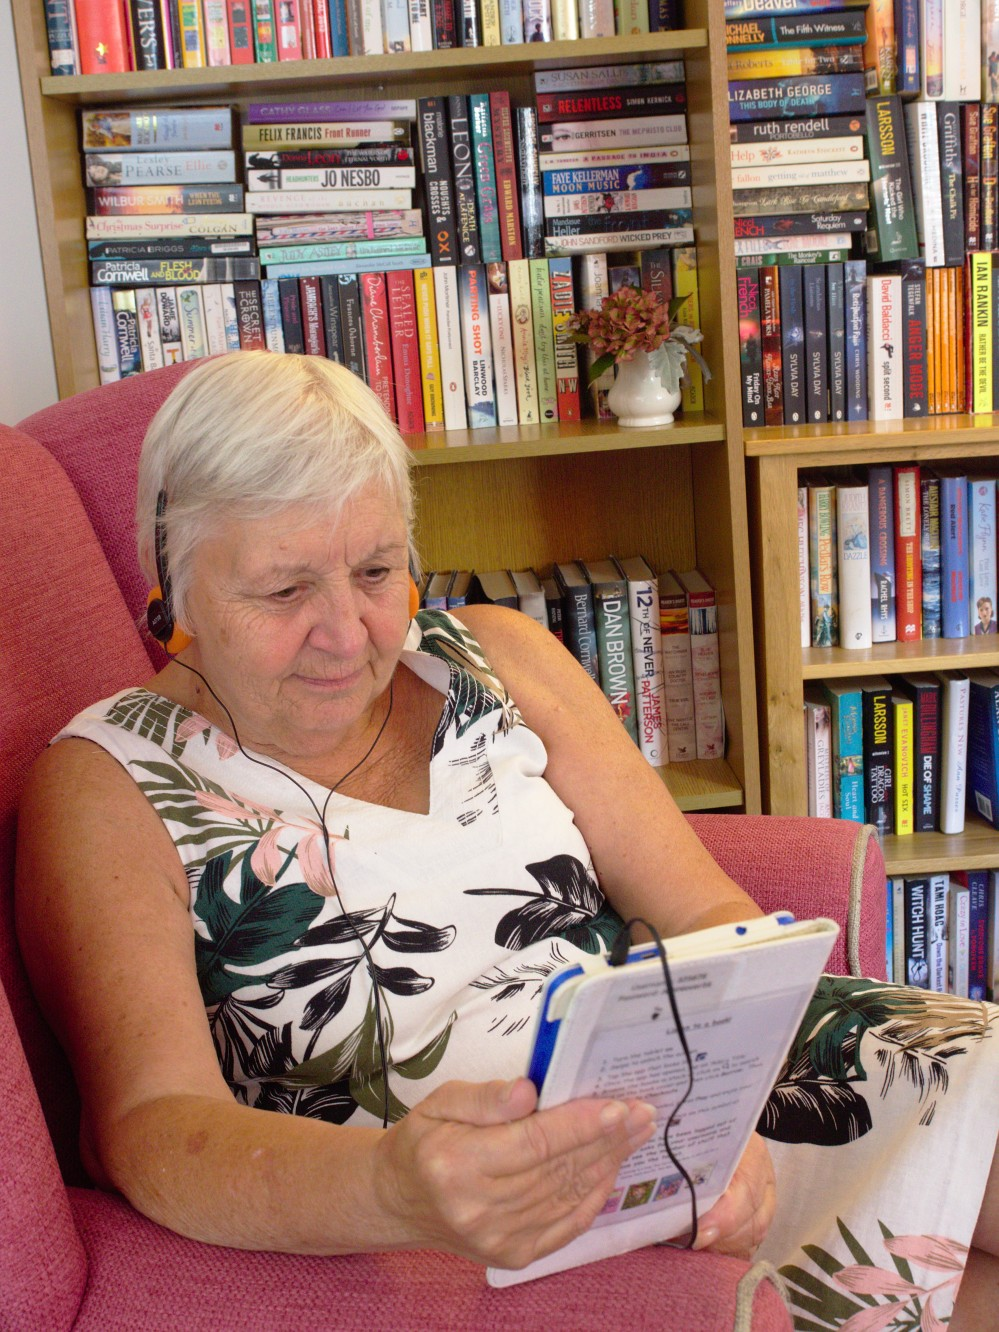 Image of woman looking at a tablet and listening to an audiobook.